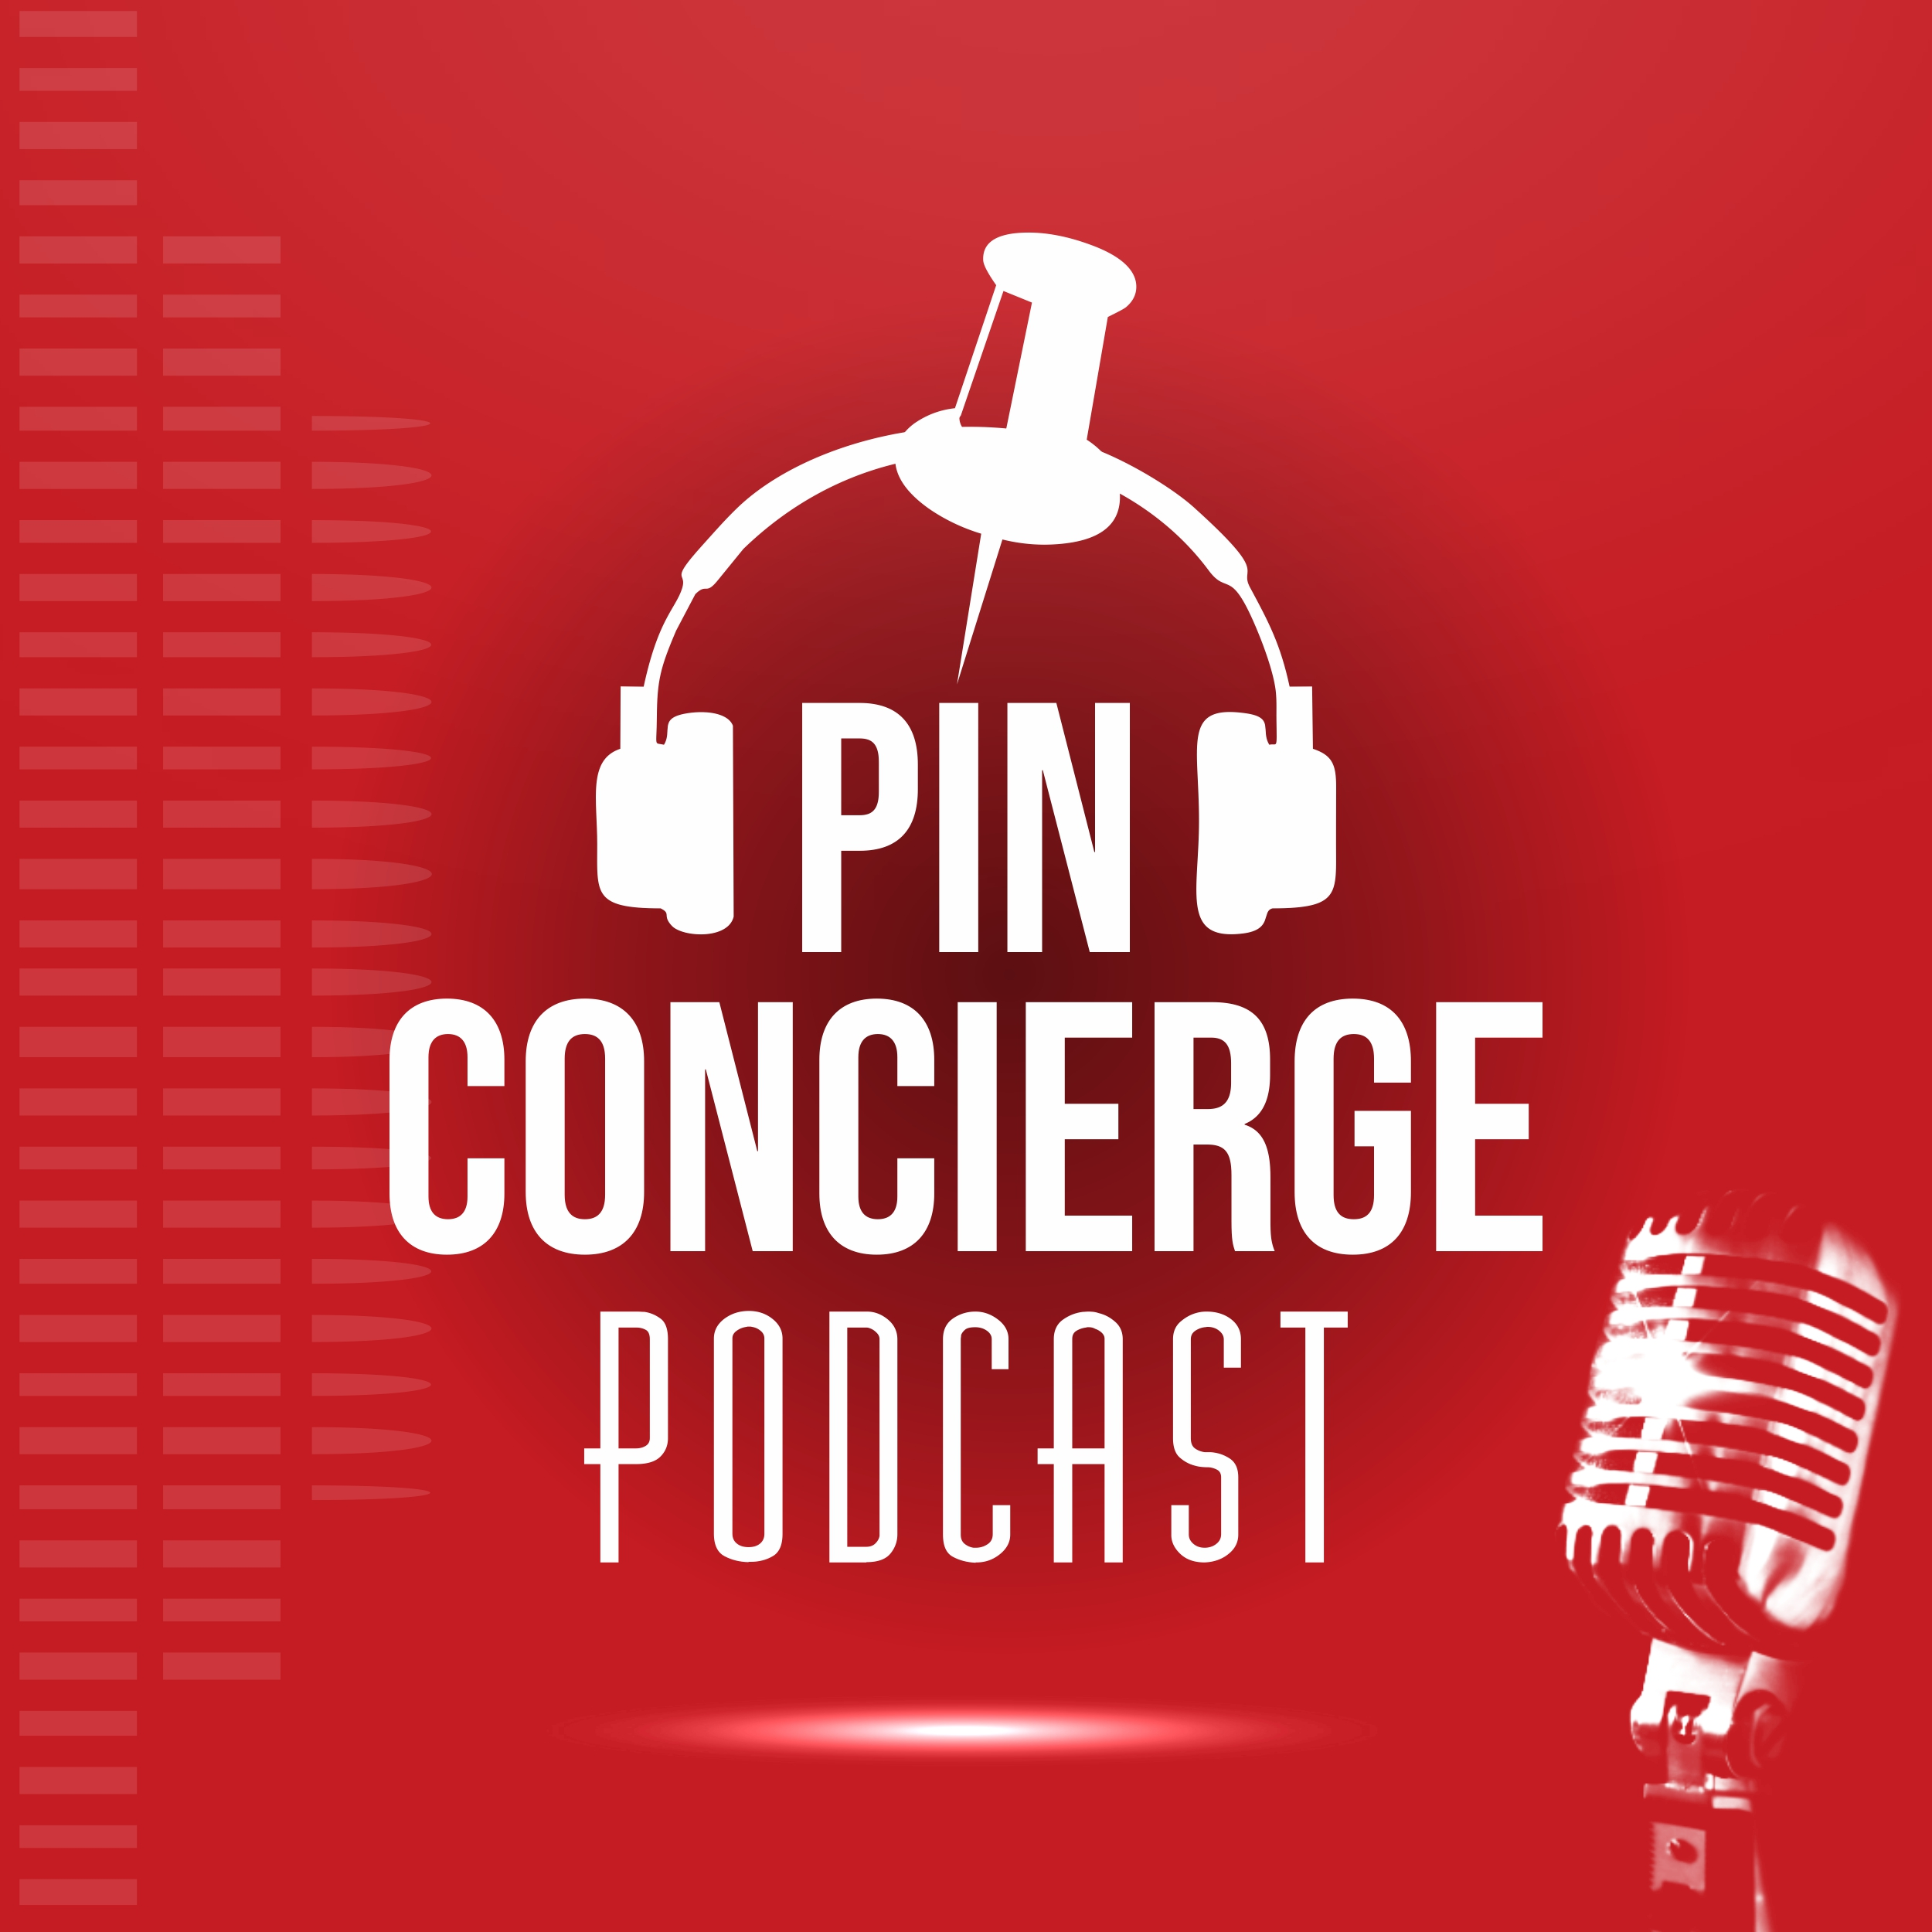 pin concierge podcast artwork.jpg